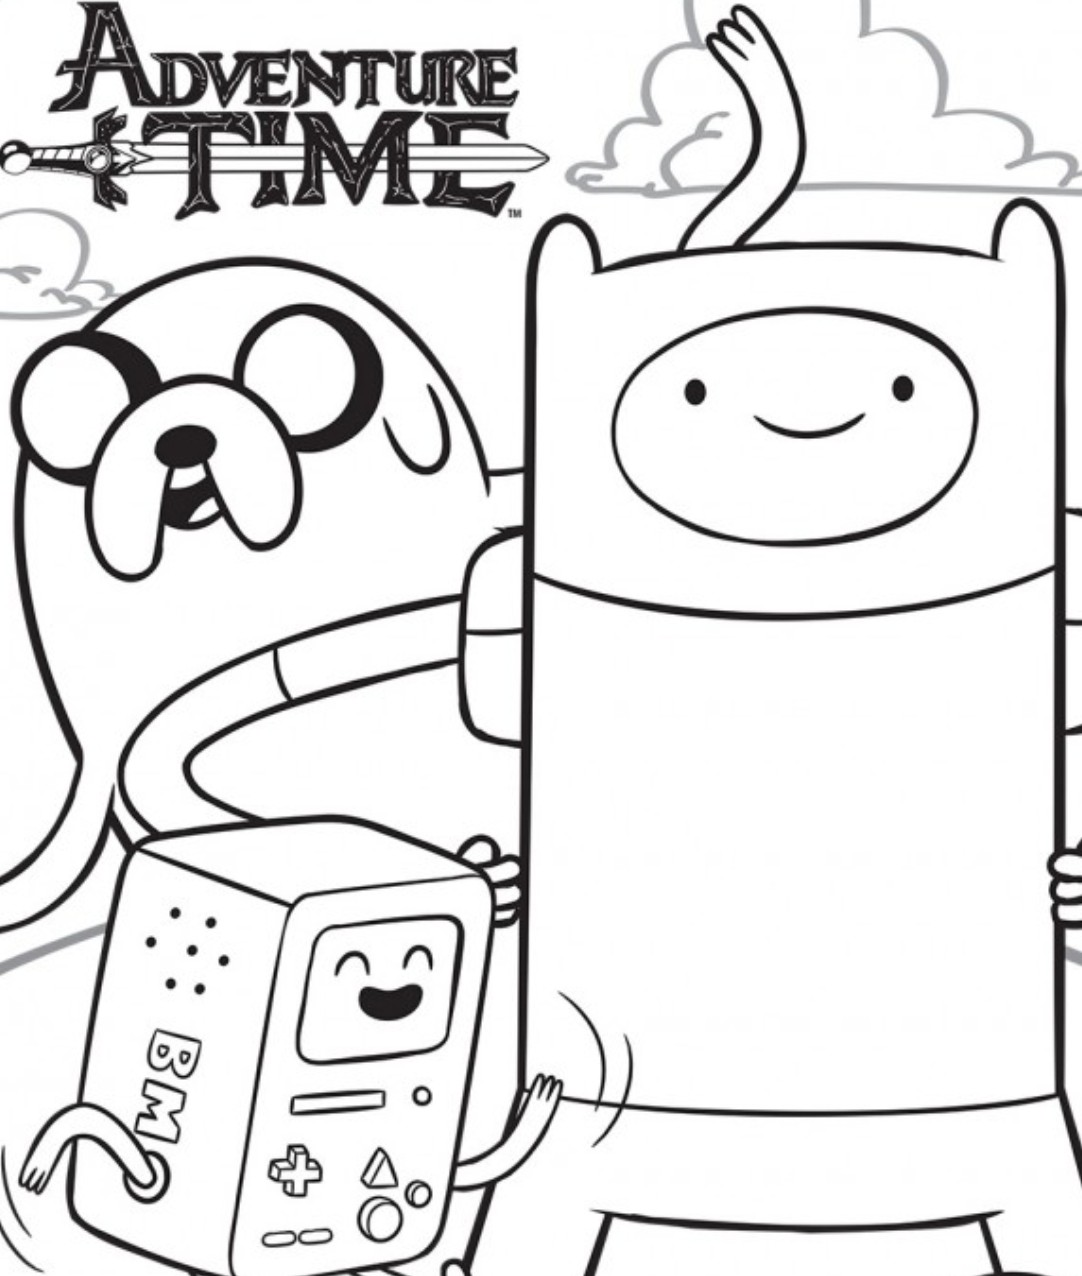 adventure-time coloring page,printable,coloring pages